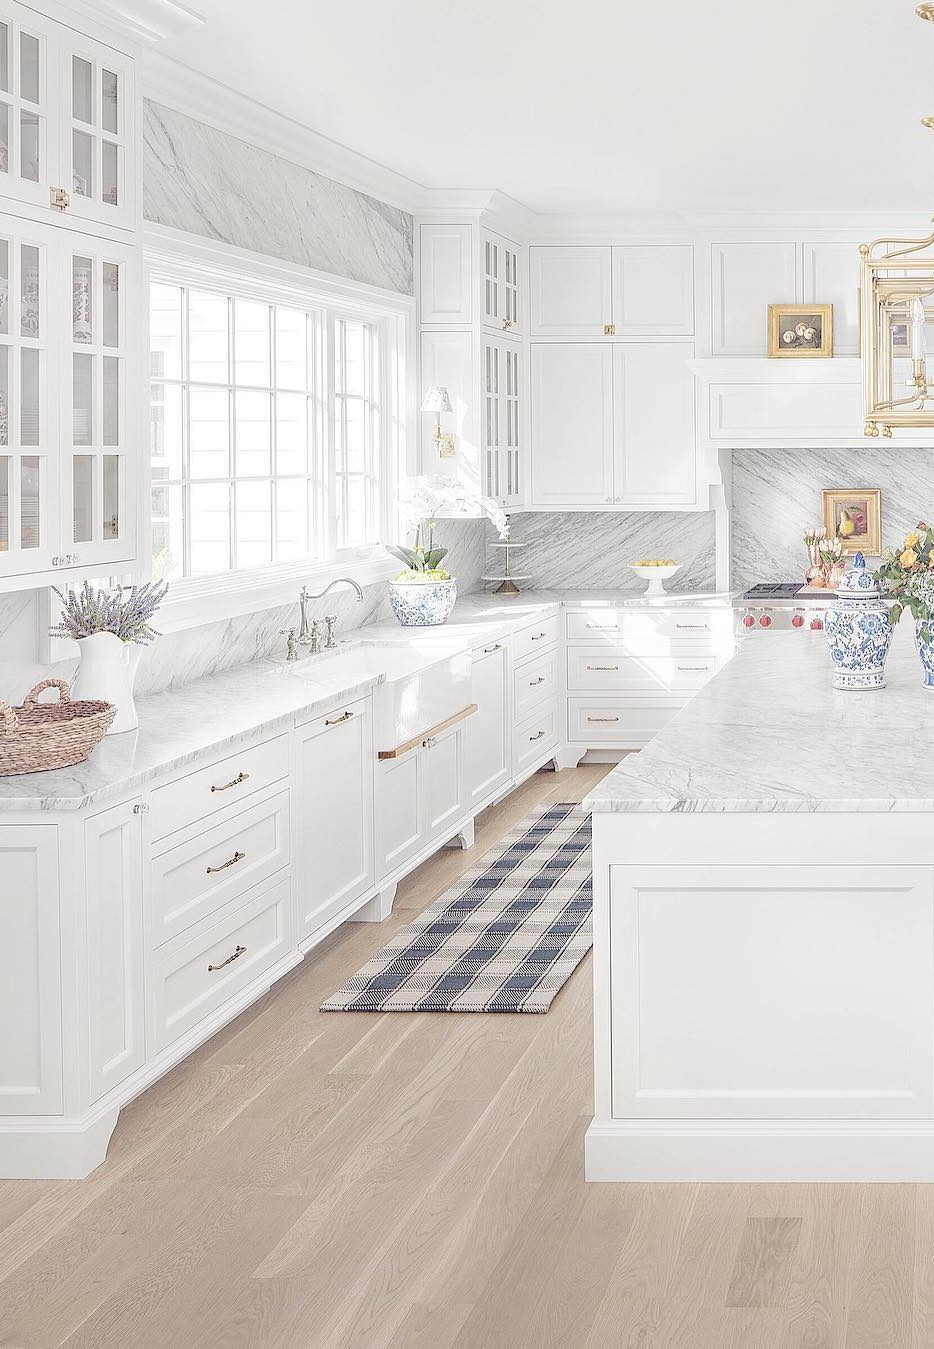 beauty latest kitchen design trends ideas for page of also transforming  home with an interior plan decor rh br pinterest